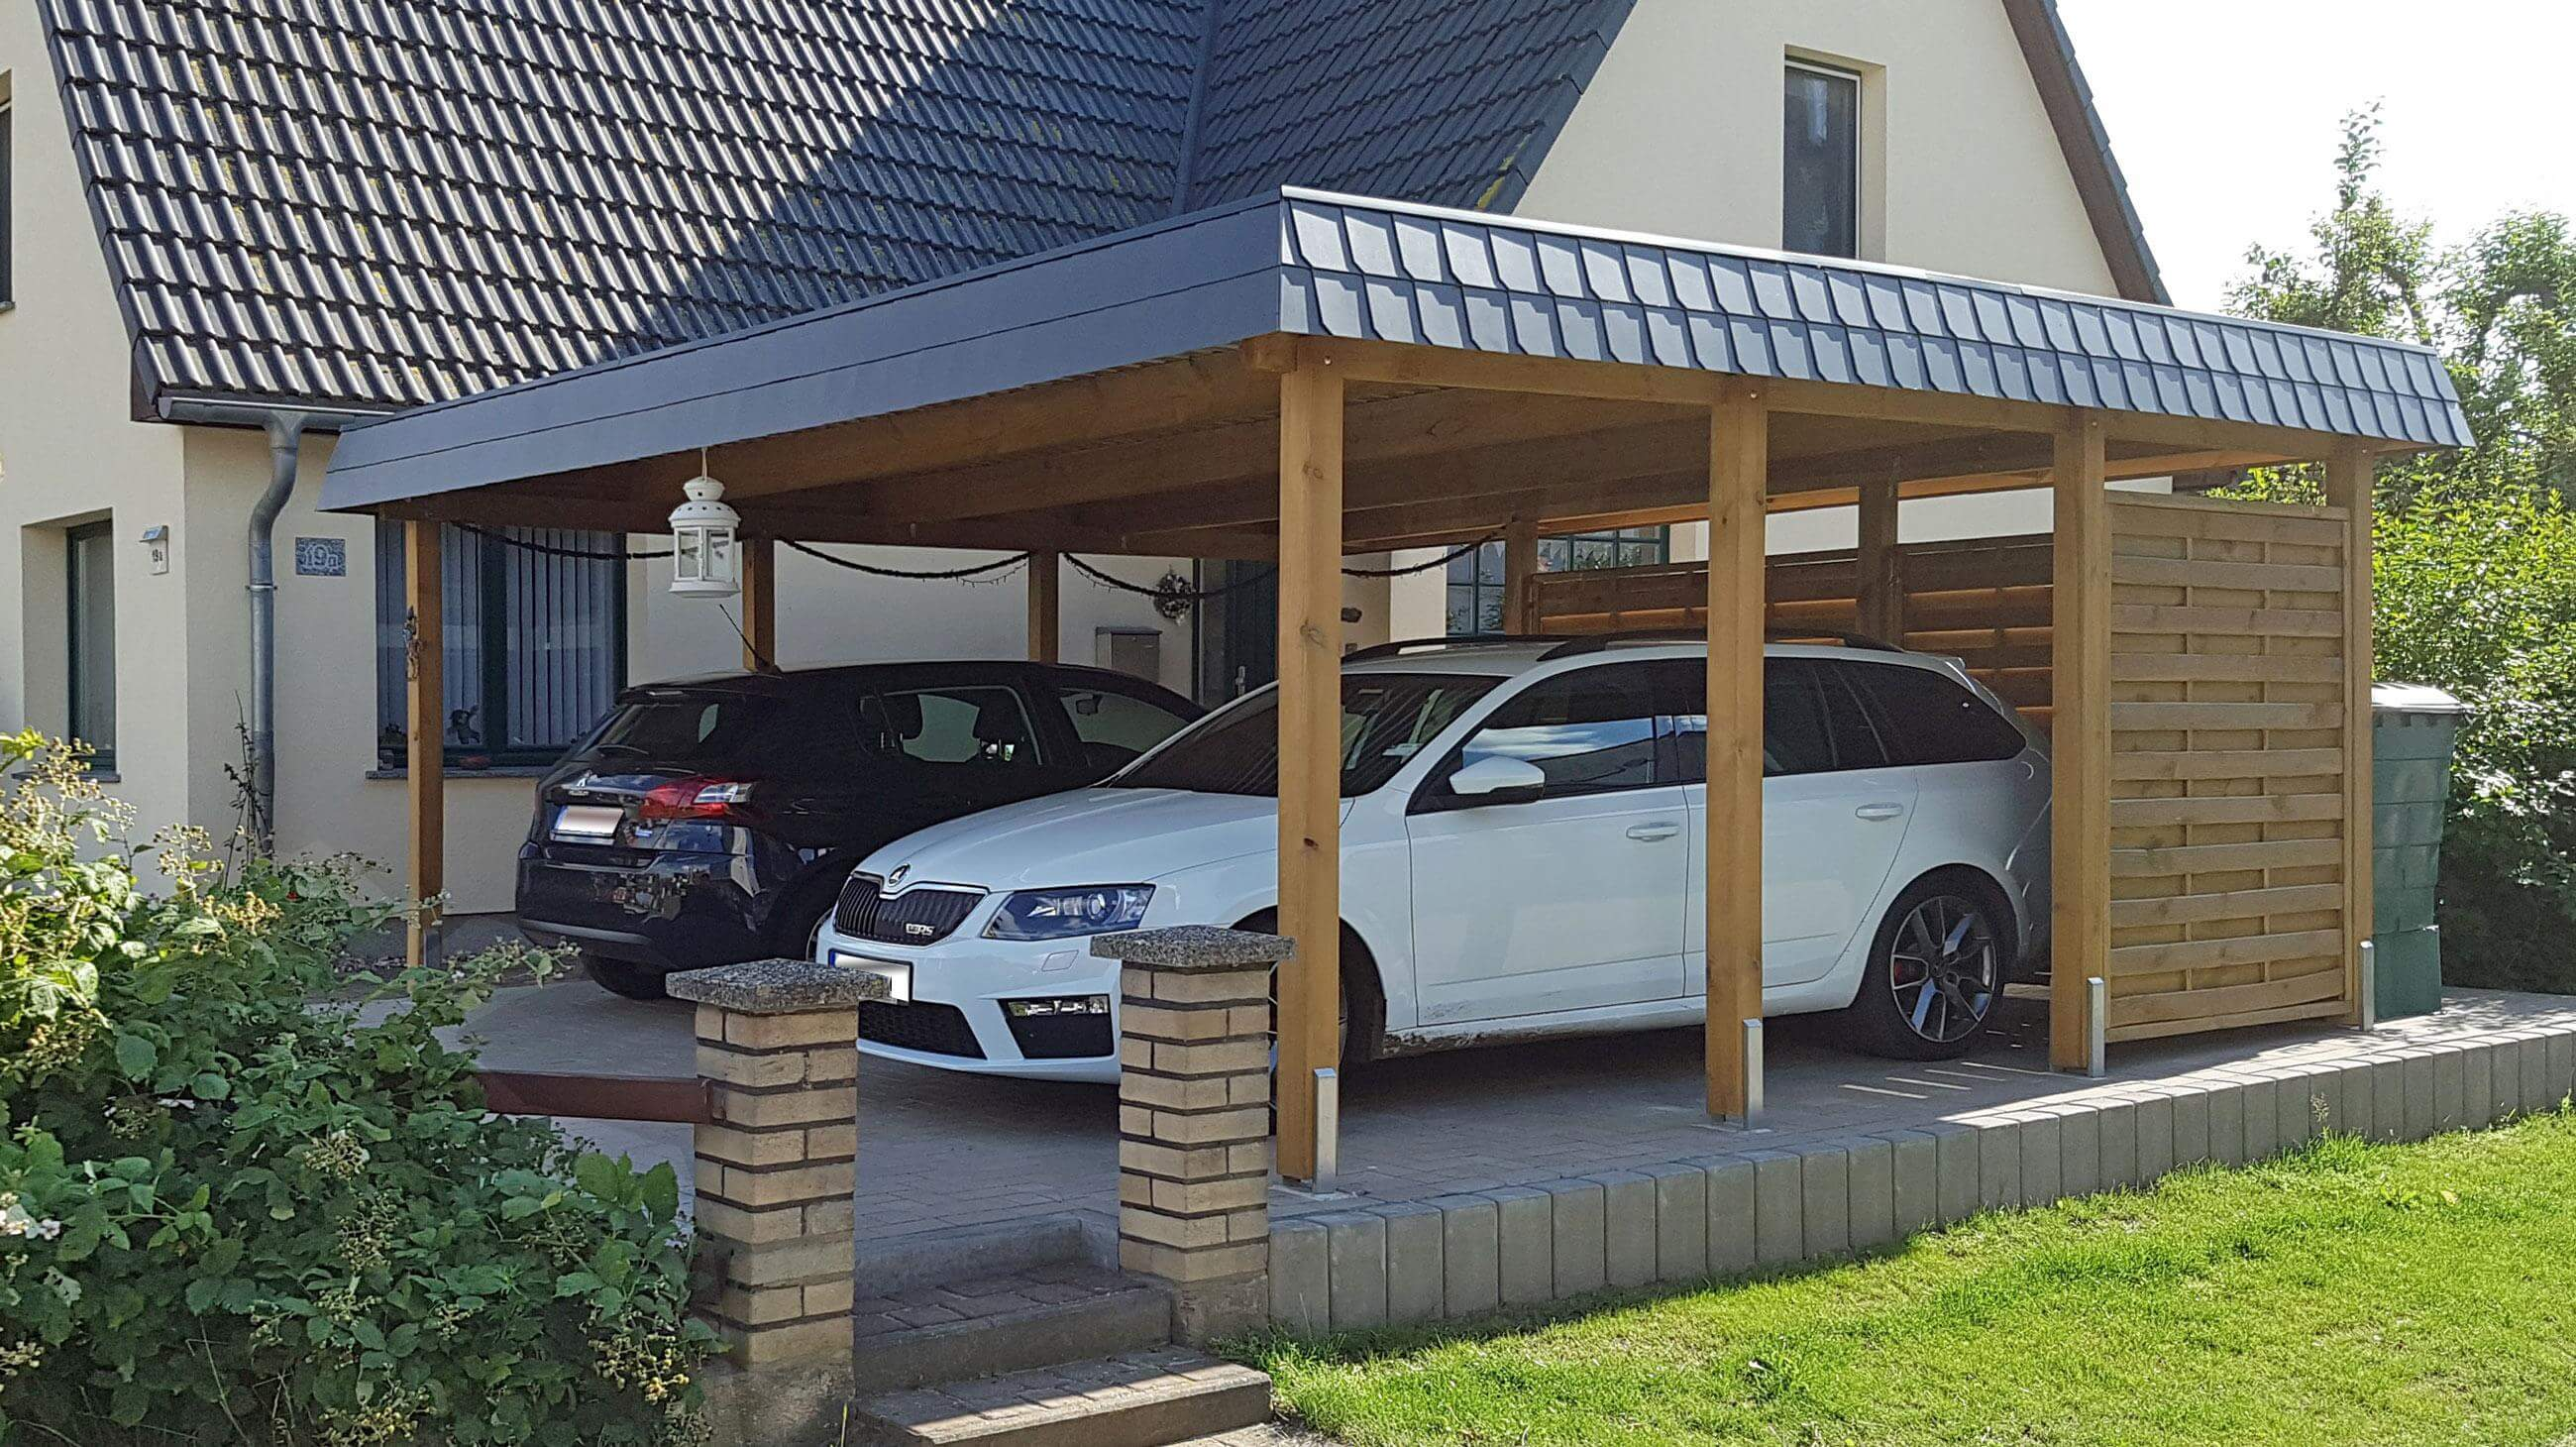 carport mit rundbogen das original carports mit rundbogen gro e vielfalt carports nach ihren w. Black Bedroom Furniture Sets. Home Design Ideas